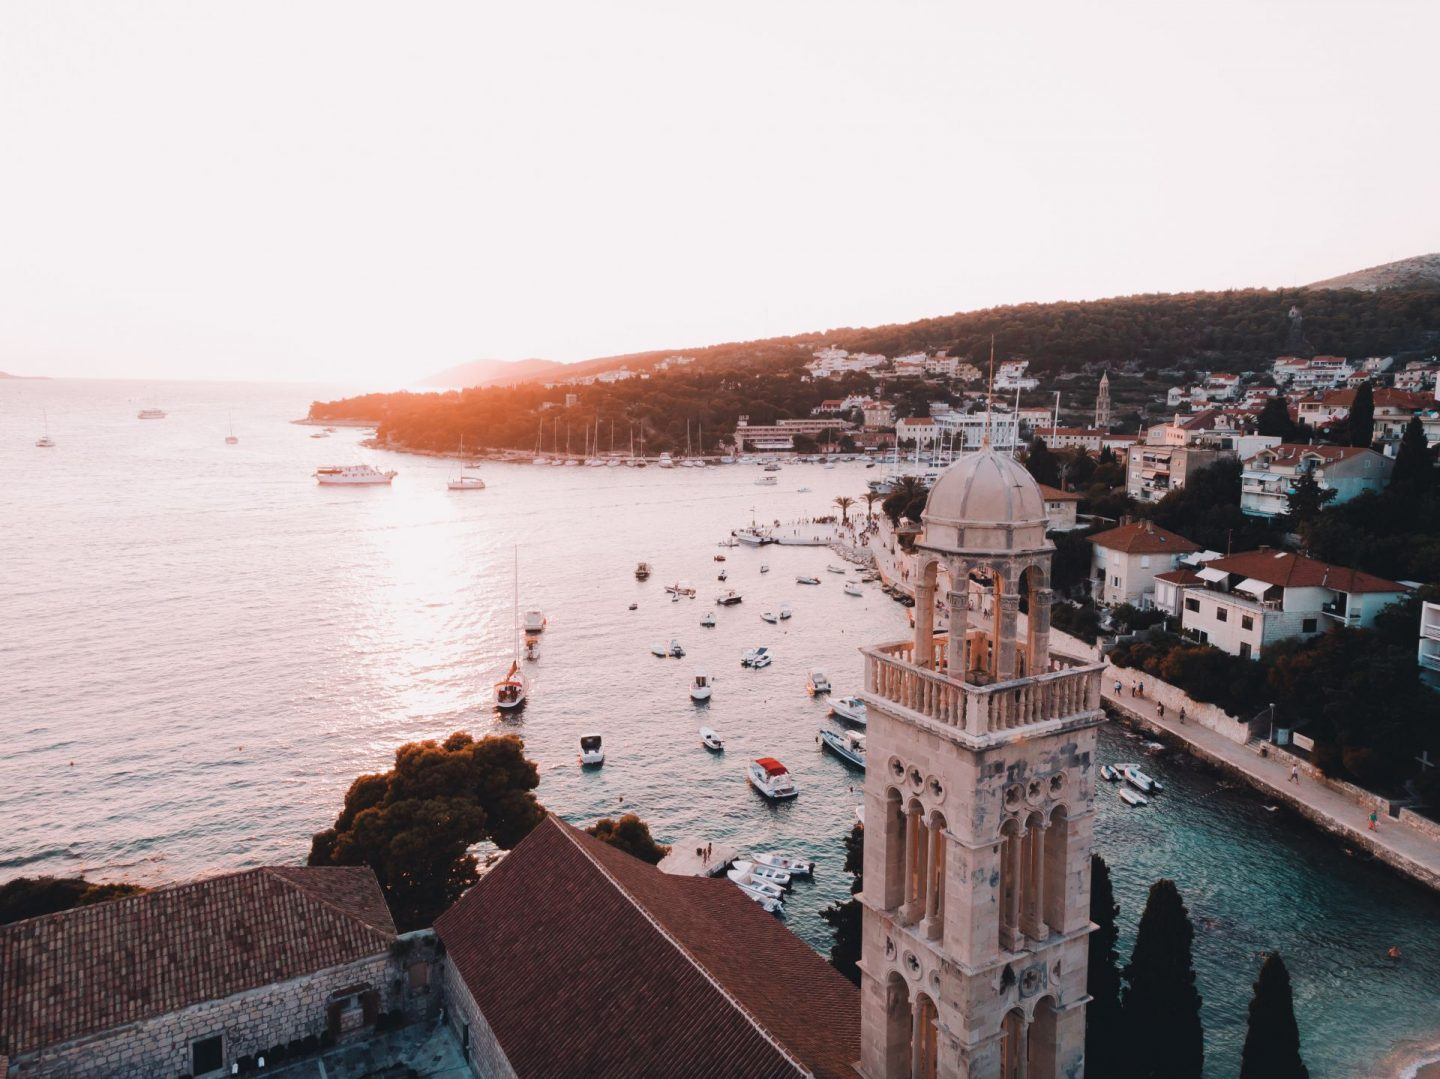 croatia in the balkens is full of history and amazing architecture to visit on romantic trips and romantic get-aways, visit dubrovnik and split or ljublana and budapest